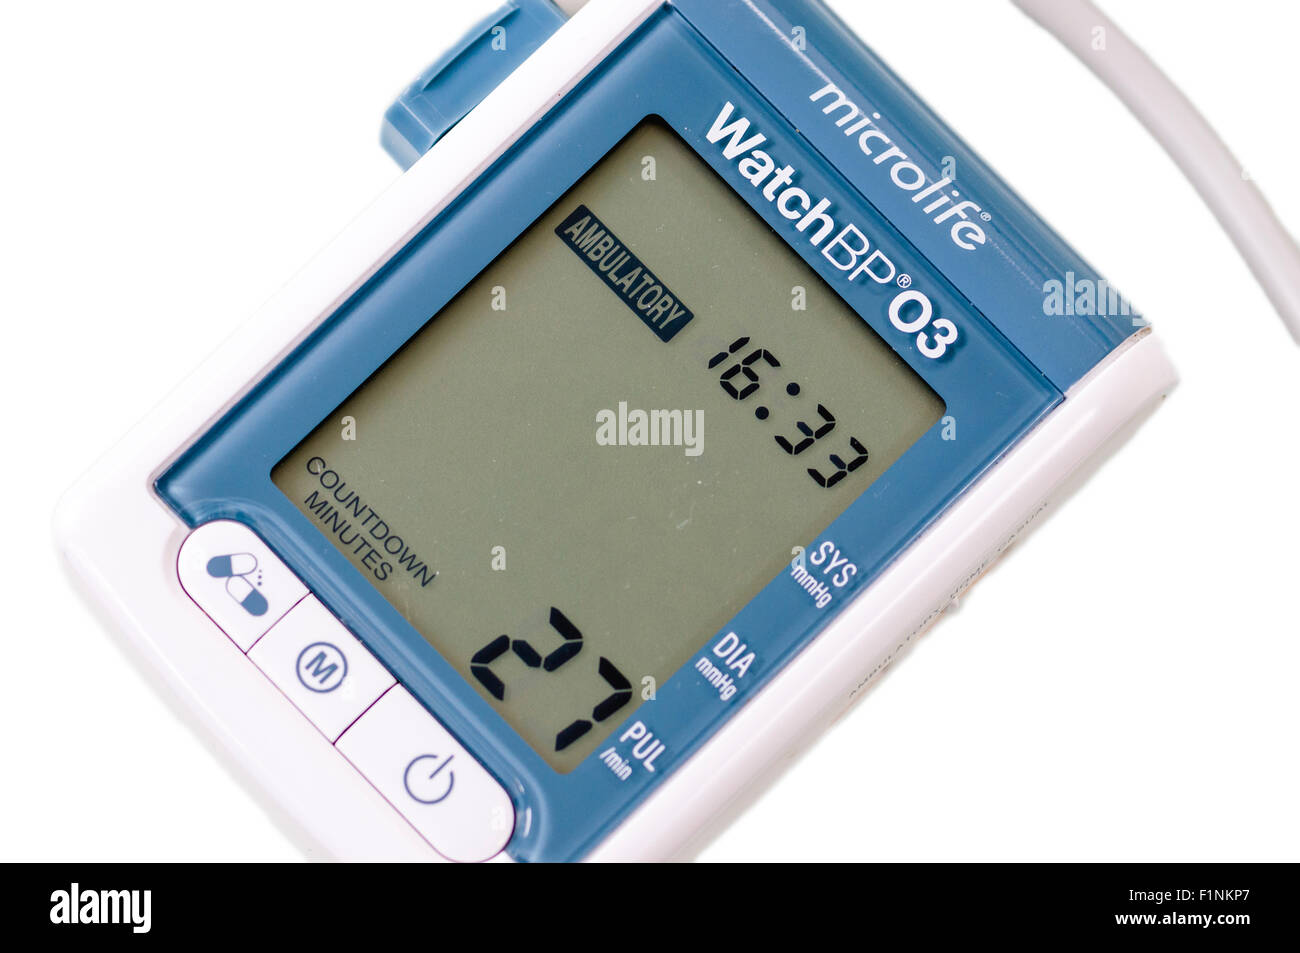 Microlife WatchBP03 ambulatory blood pressure monitor - Stock Image